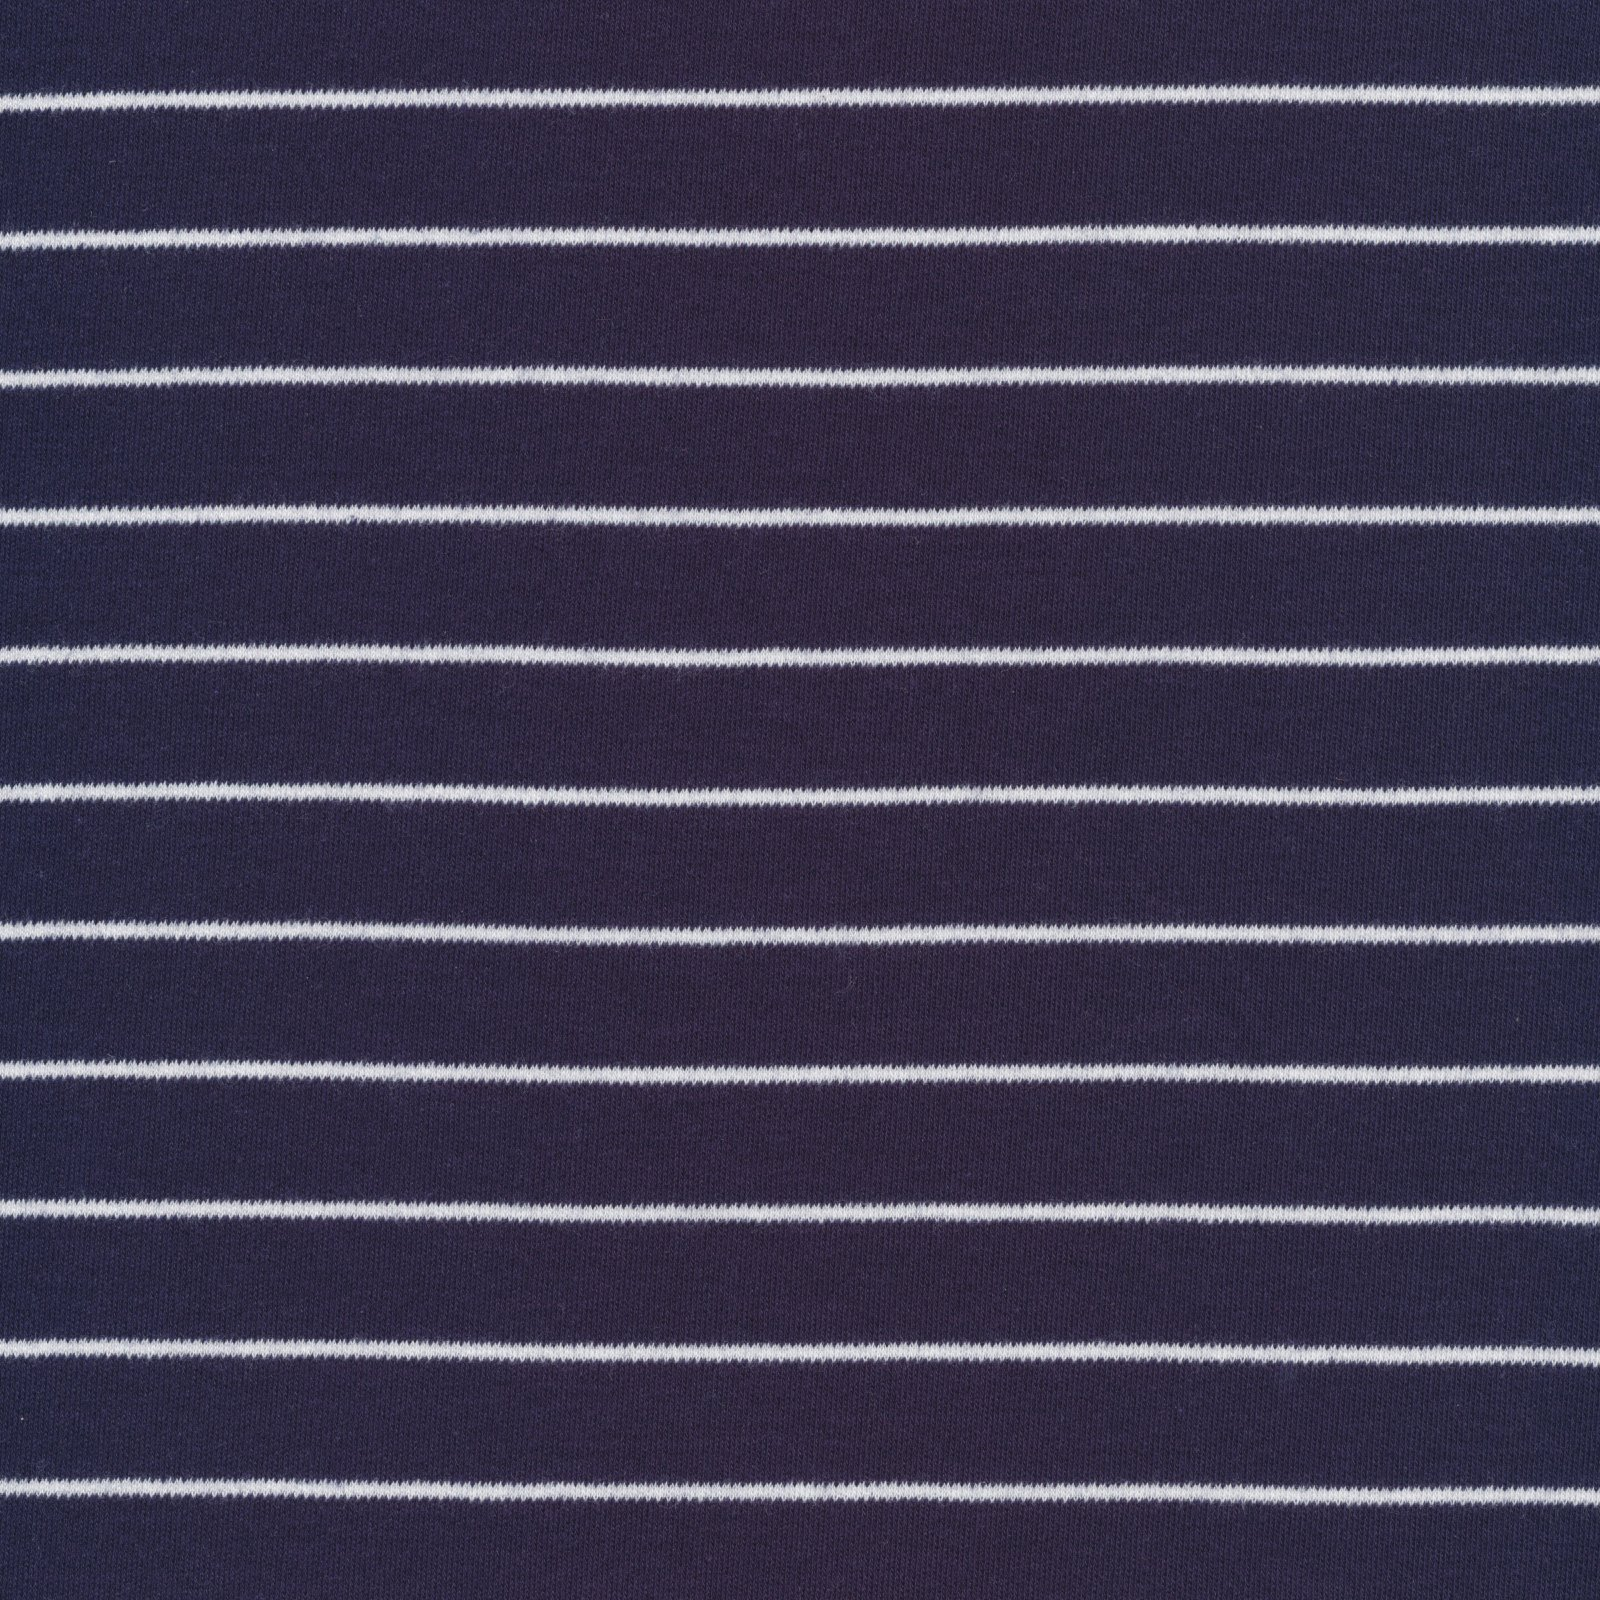 Cloud 9 - Organic Cotton Knit - Stripes - Navy